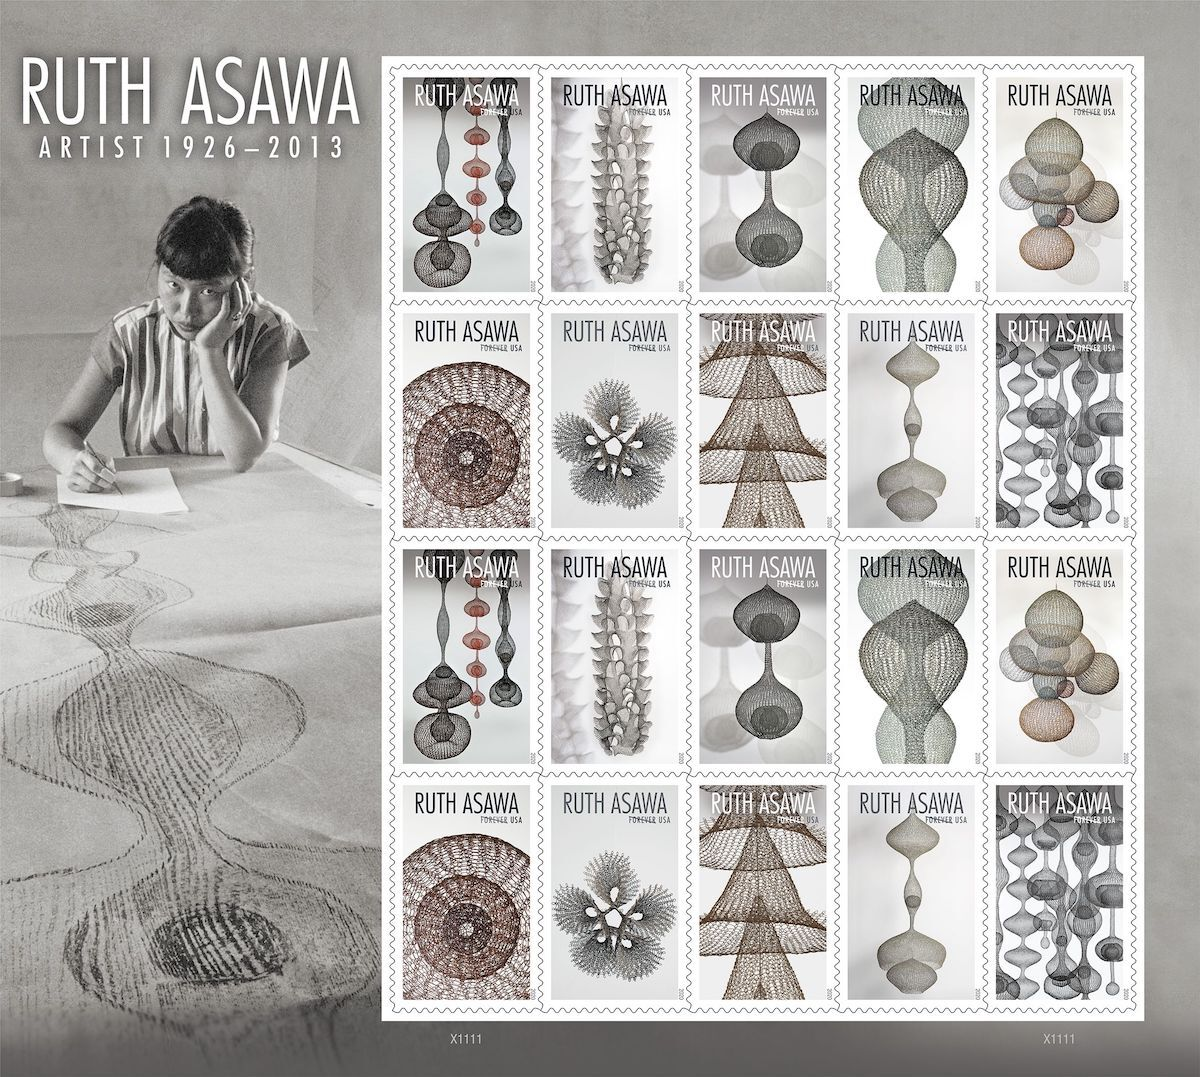 Ruth Asawa's new USPS stamp series. Image courtesy of United States Postal Service.